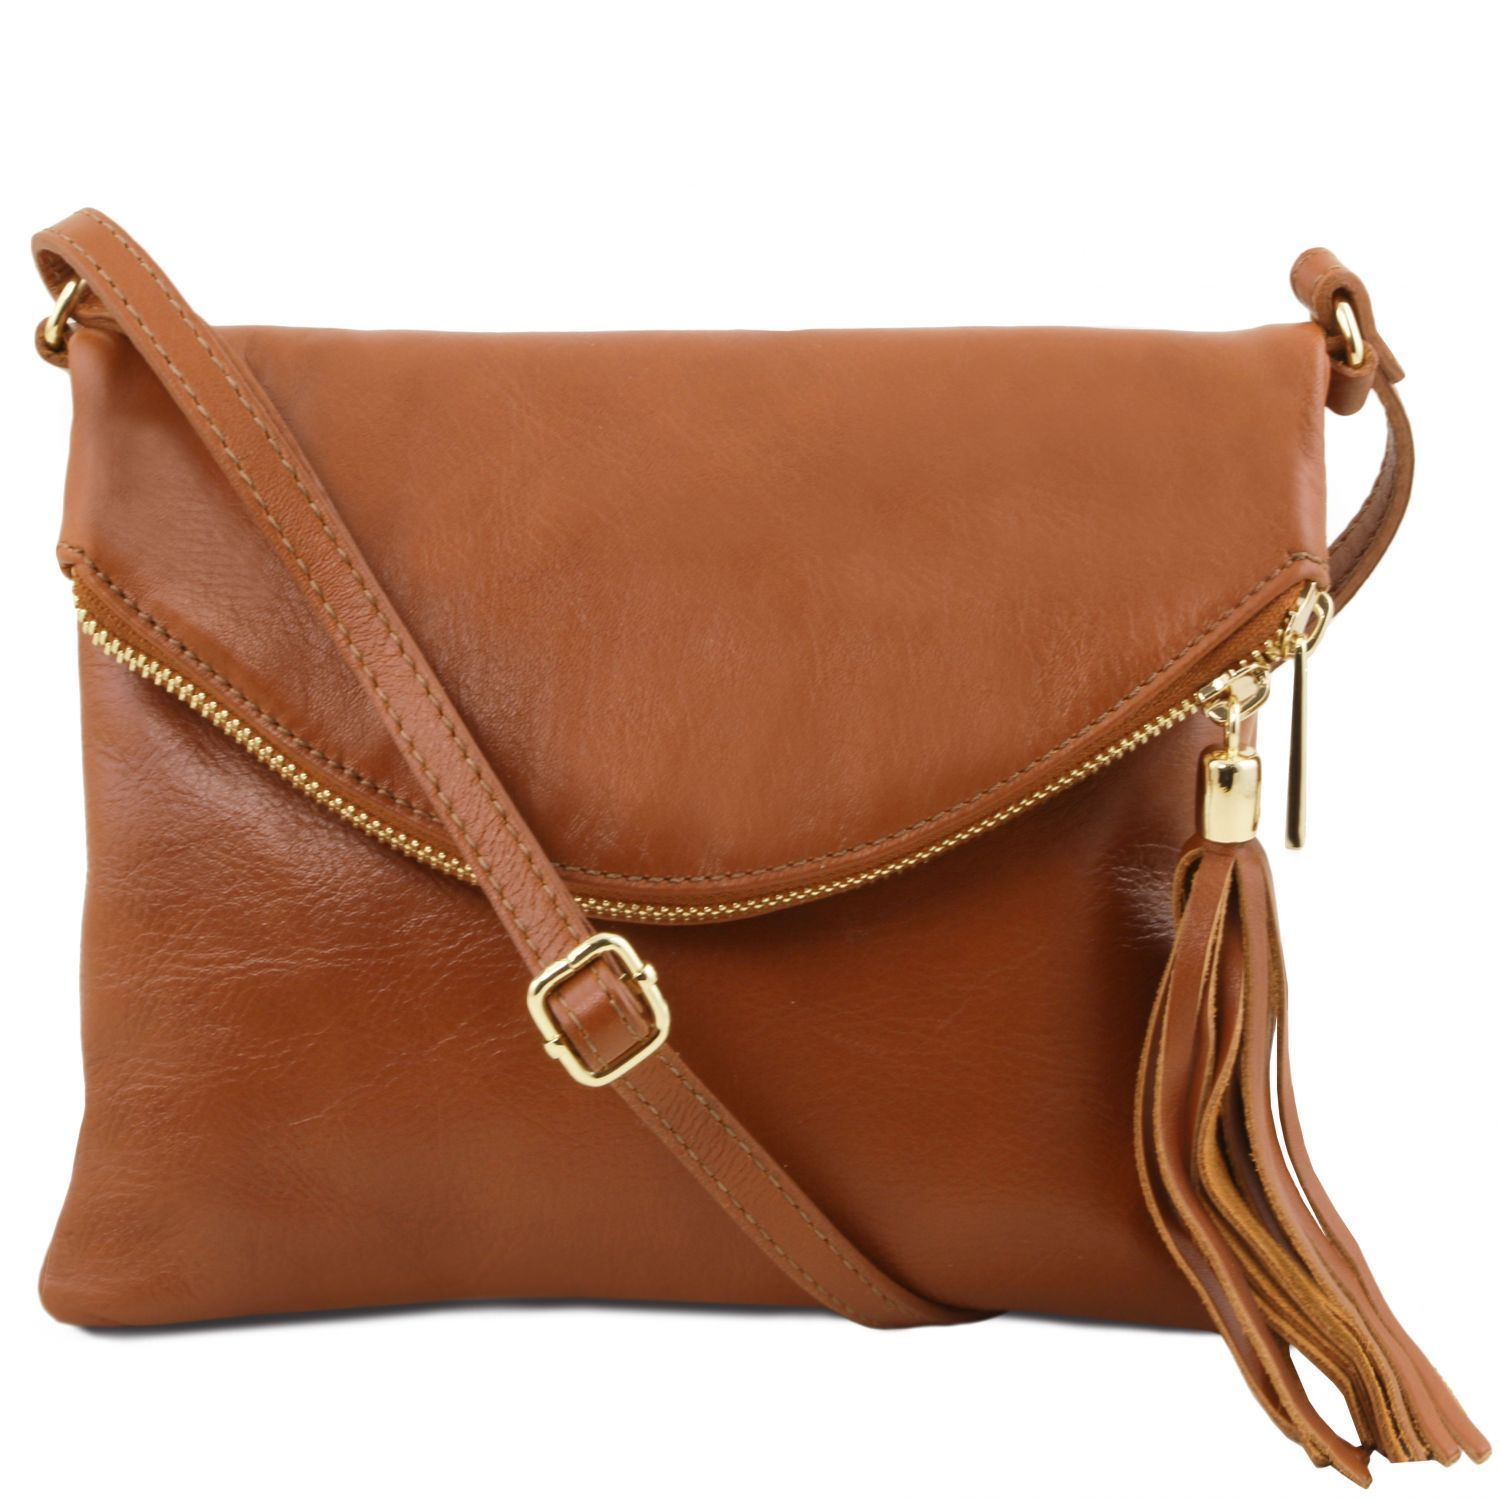 Tuscany Leather 'TL Bag' Young Shoulder Bag With Tassel (TL141153) Ladies Shoulder Bag Tuscany Leather Cognac